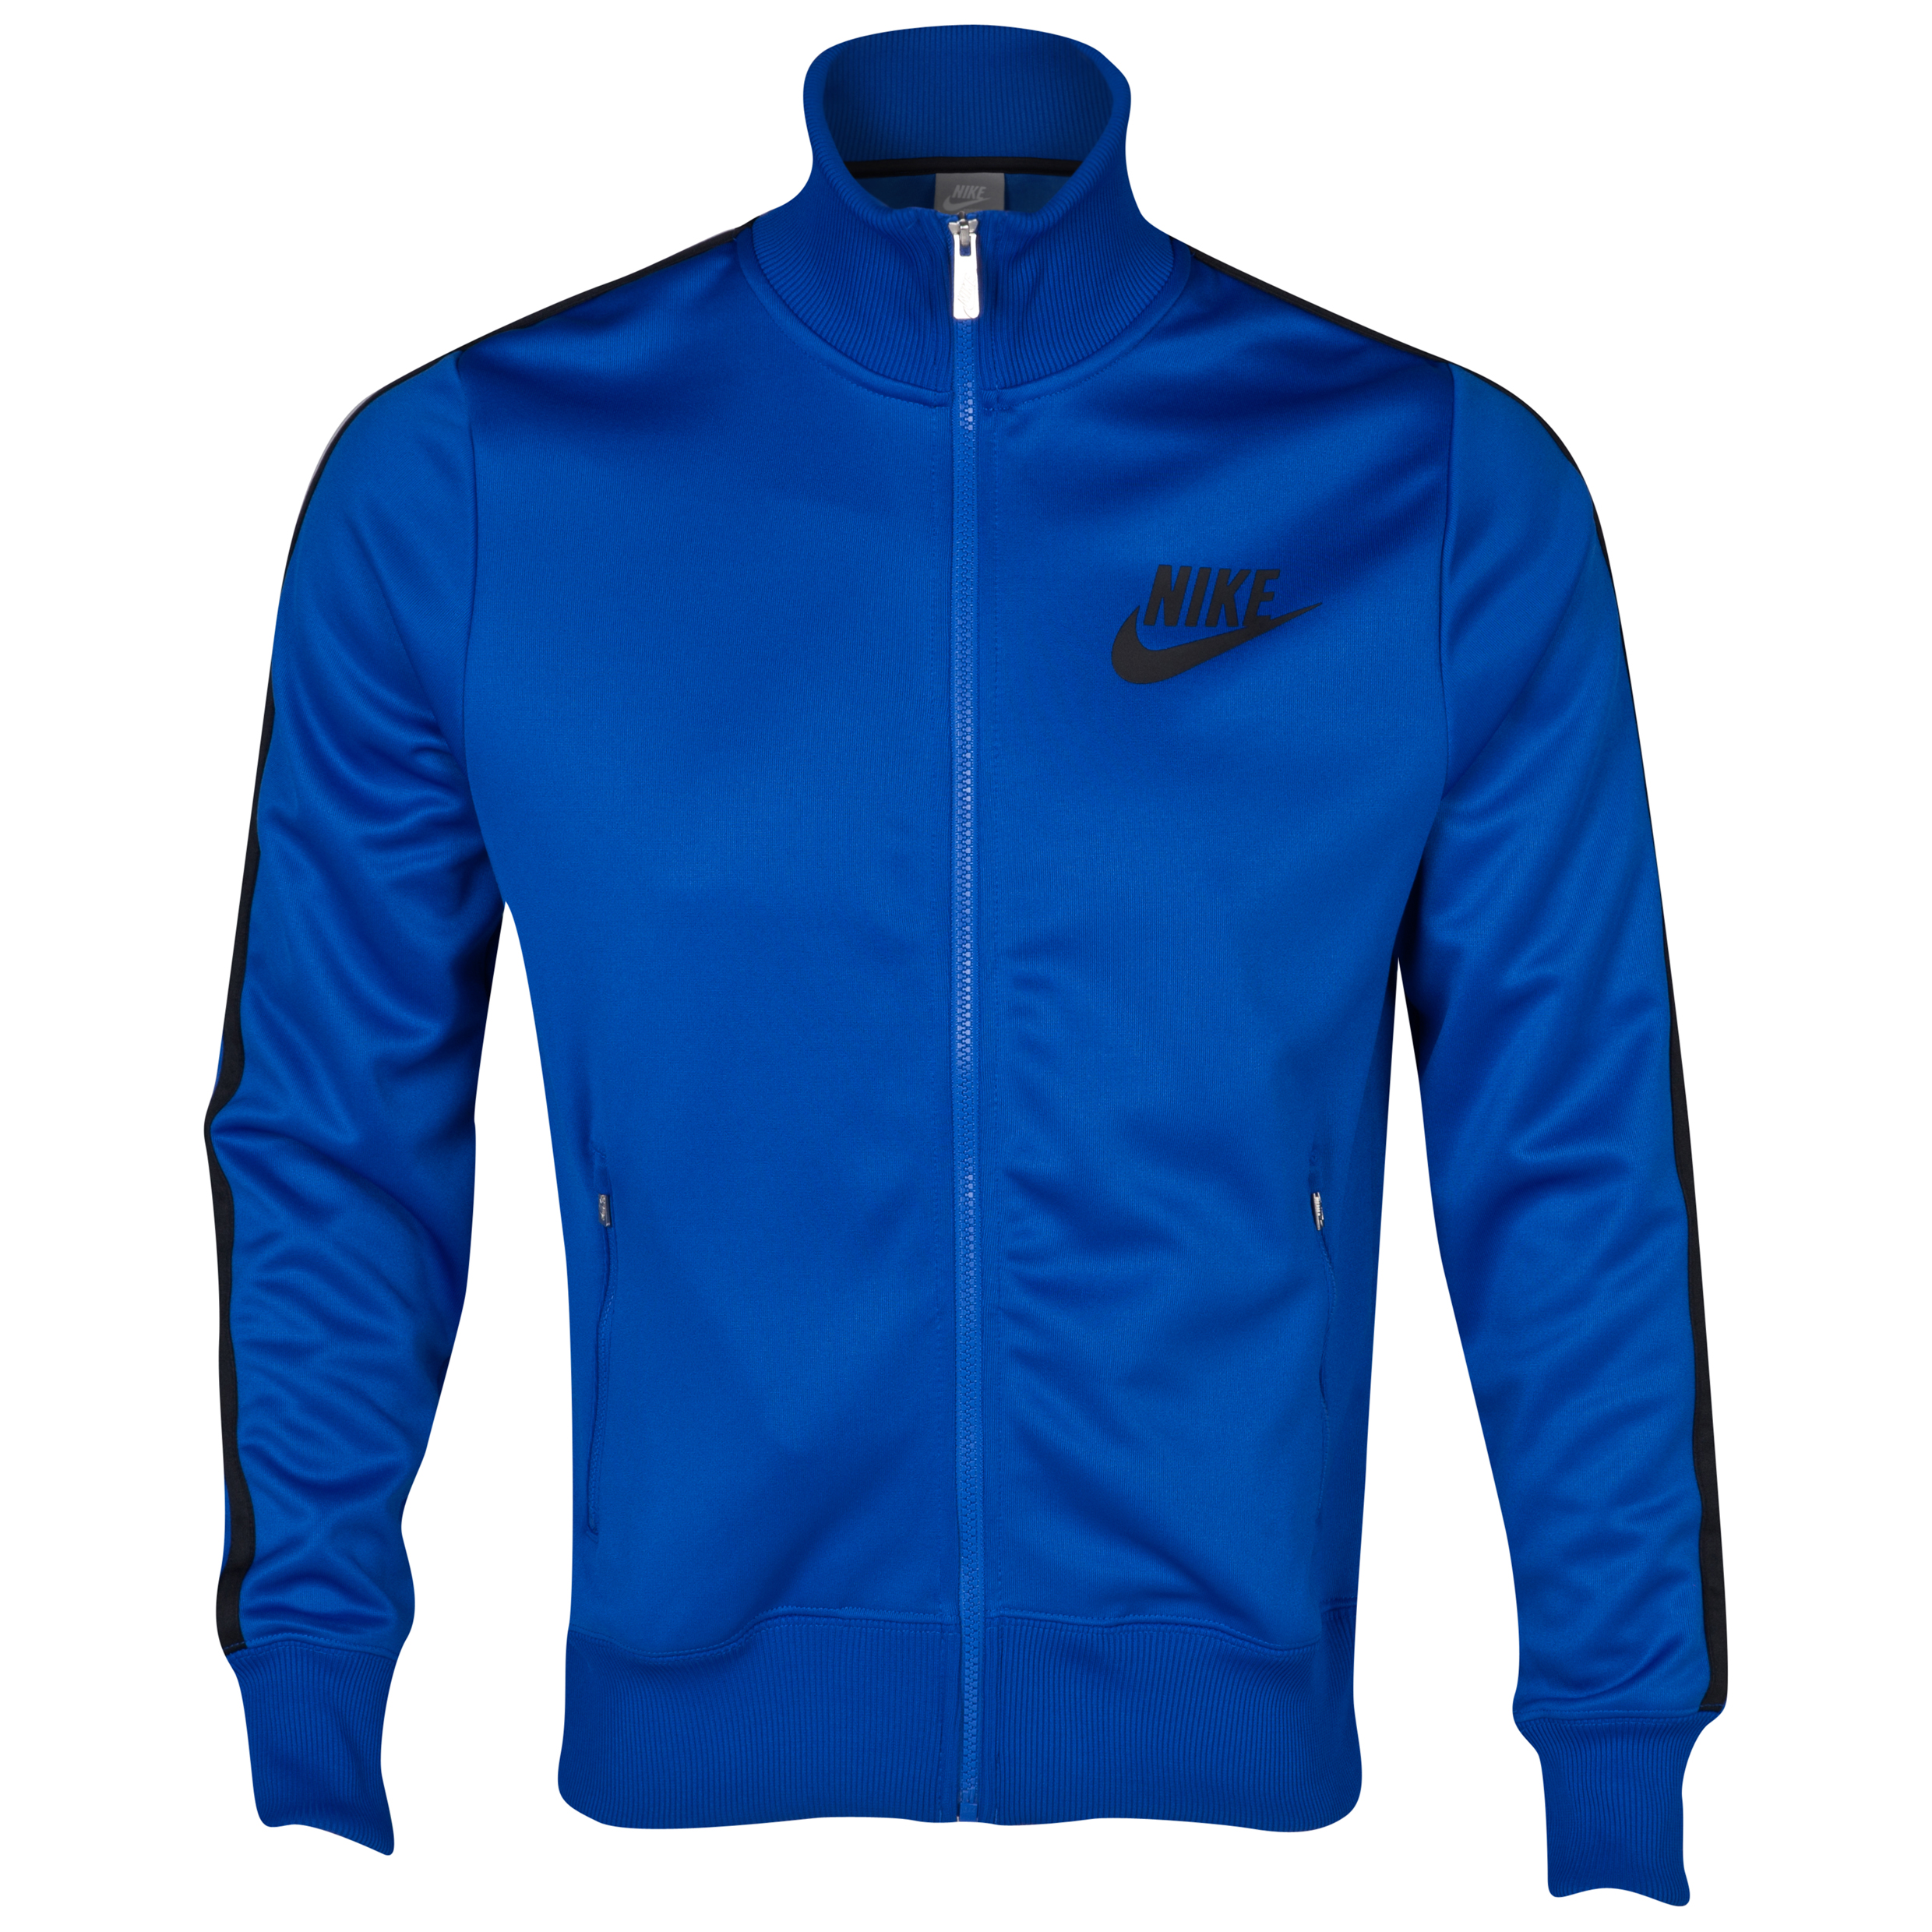 Nike Limitless Track Jacket - Game Royal Blue